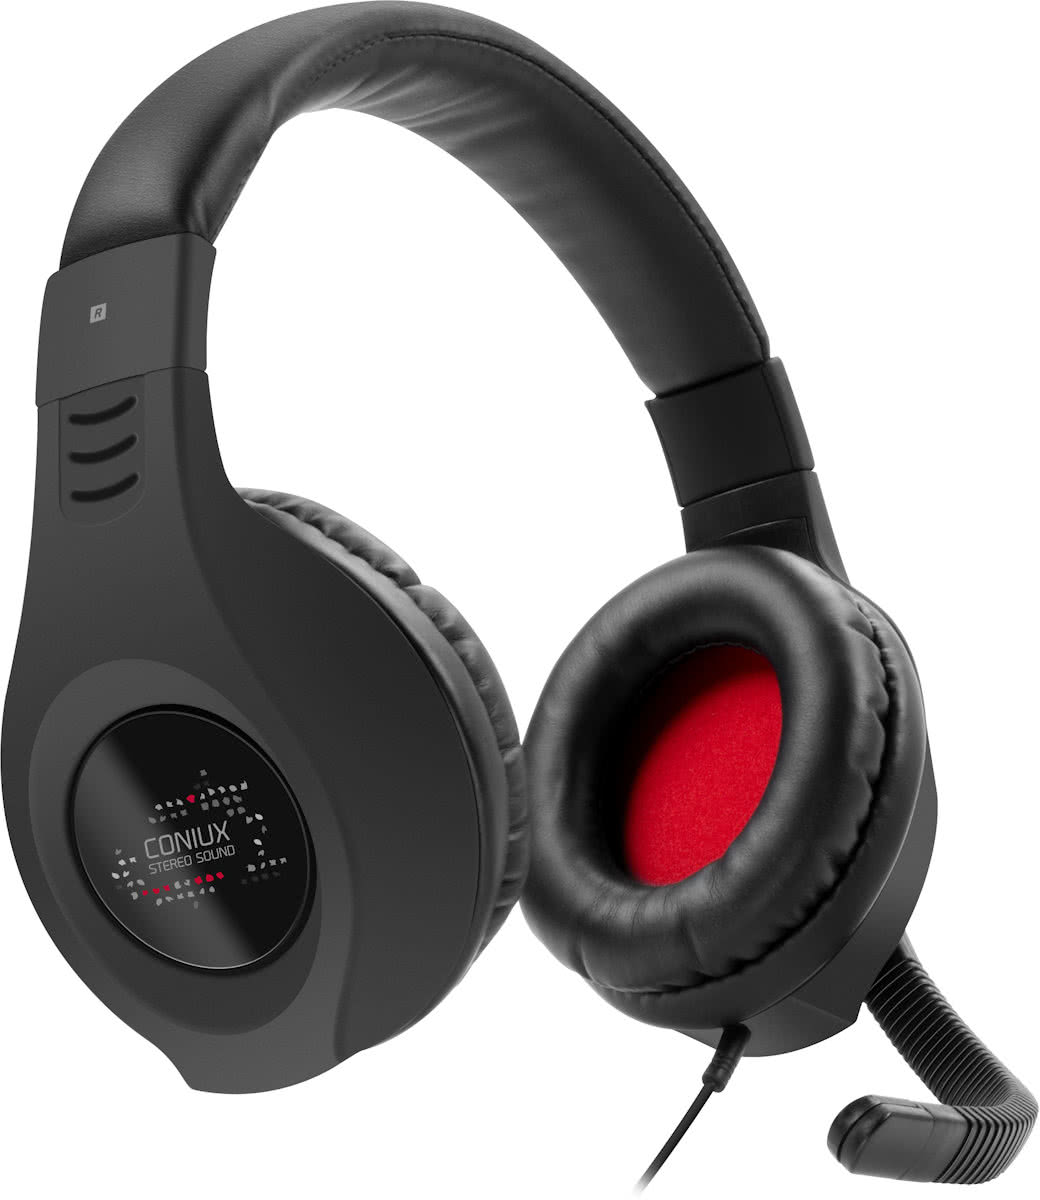 Speedlink CONIUX - Wired Stereo Gaming Headset - Zwart - PS4